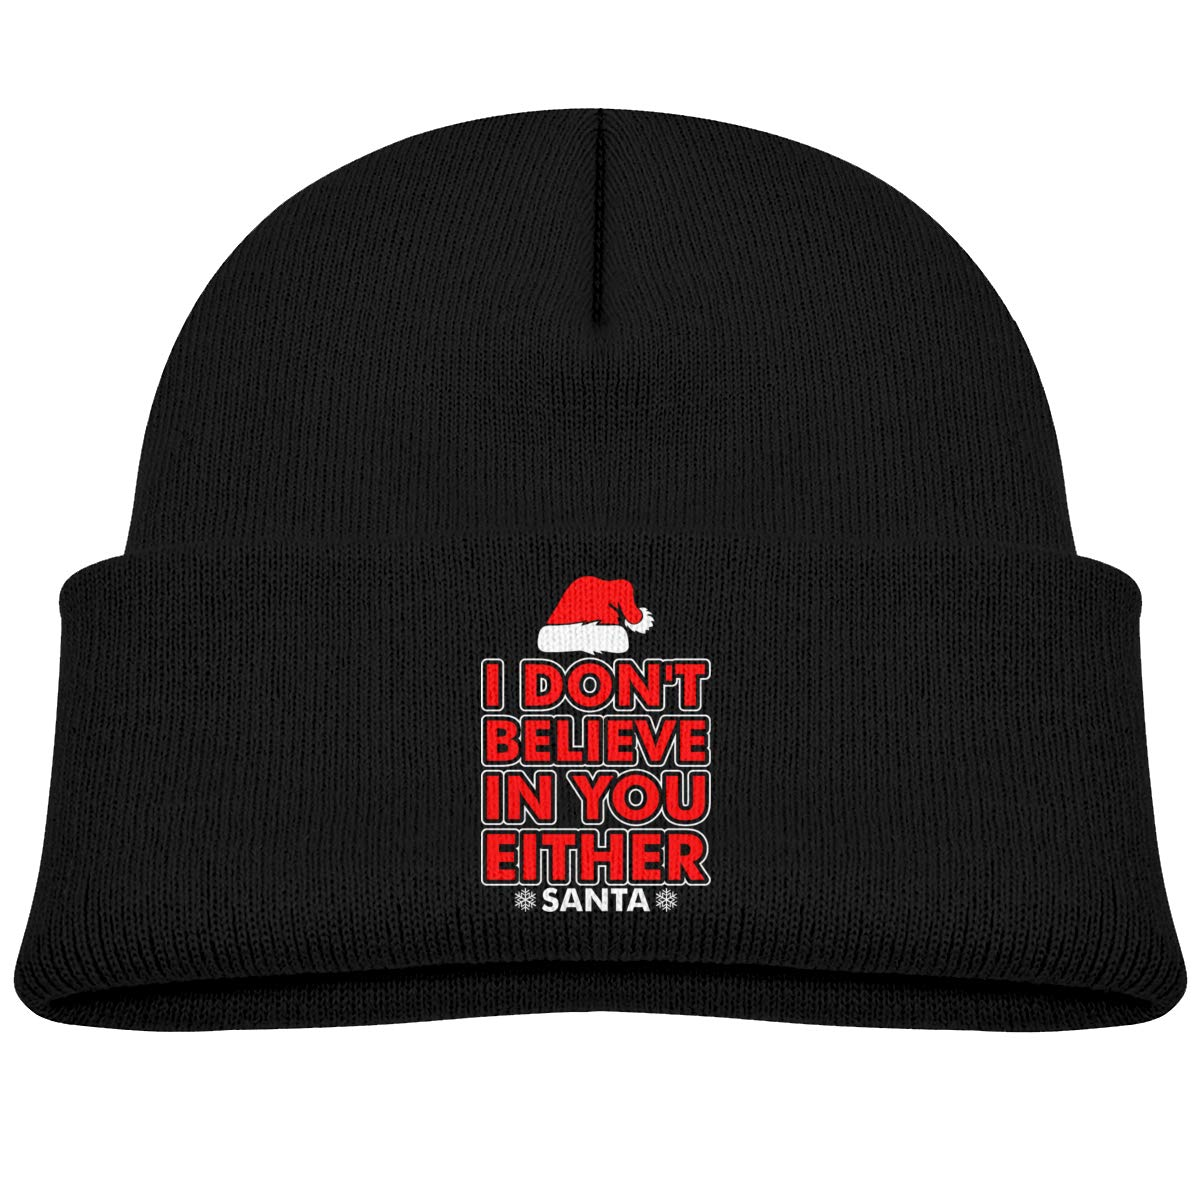 I Dont Believe in You Either Santa Infant Skull Hat Baby Boys Beanie Cap